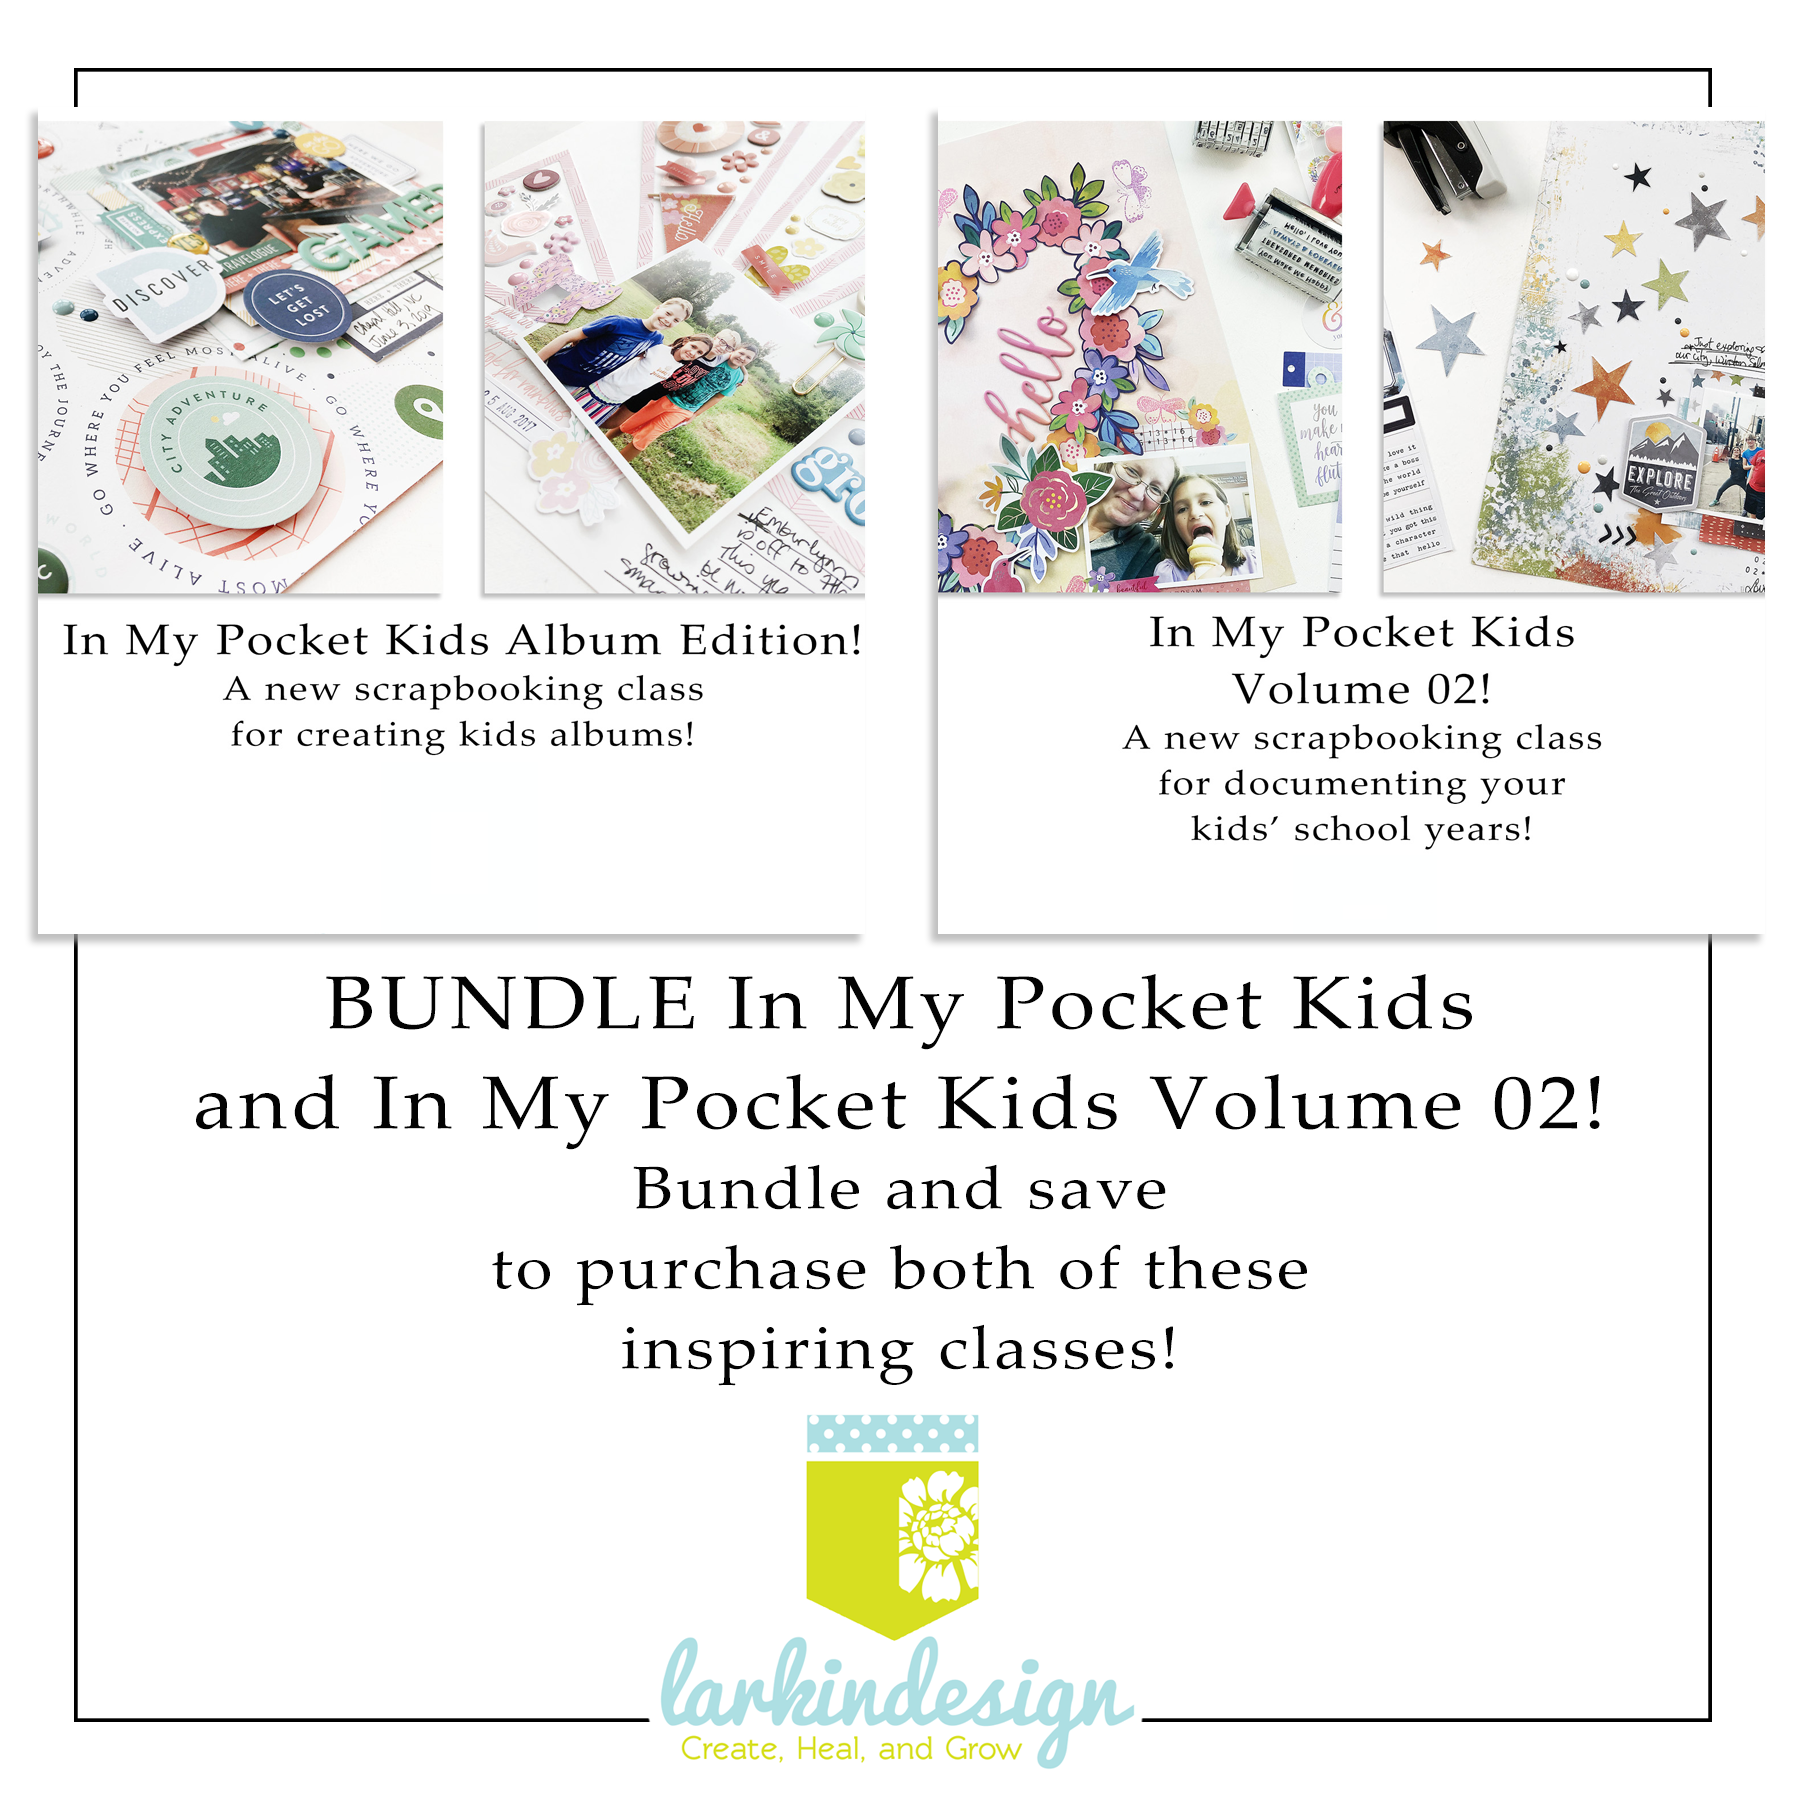 Class Bundle: In My Pocket Kids Album Edition And Volume 02 Memory Keeping Class